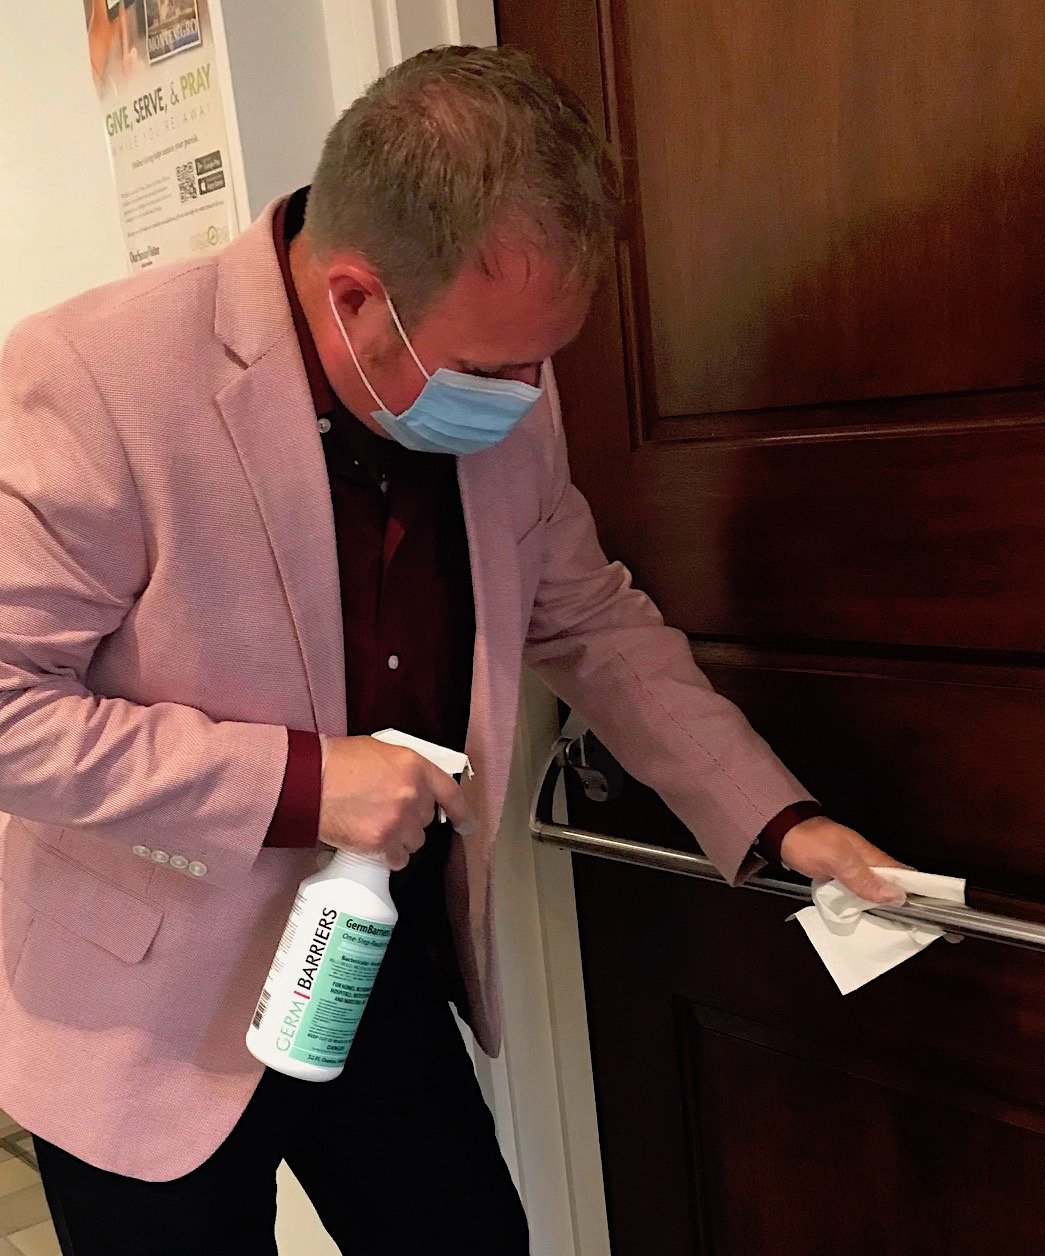 For Cleaning AND Disinfecting: Spray, Wipe, Spray, then Let Dry